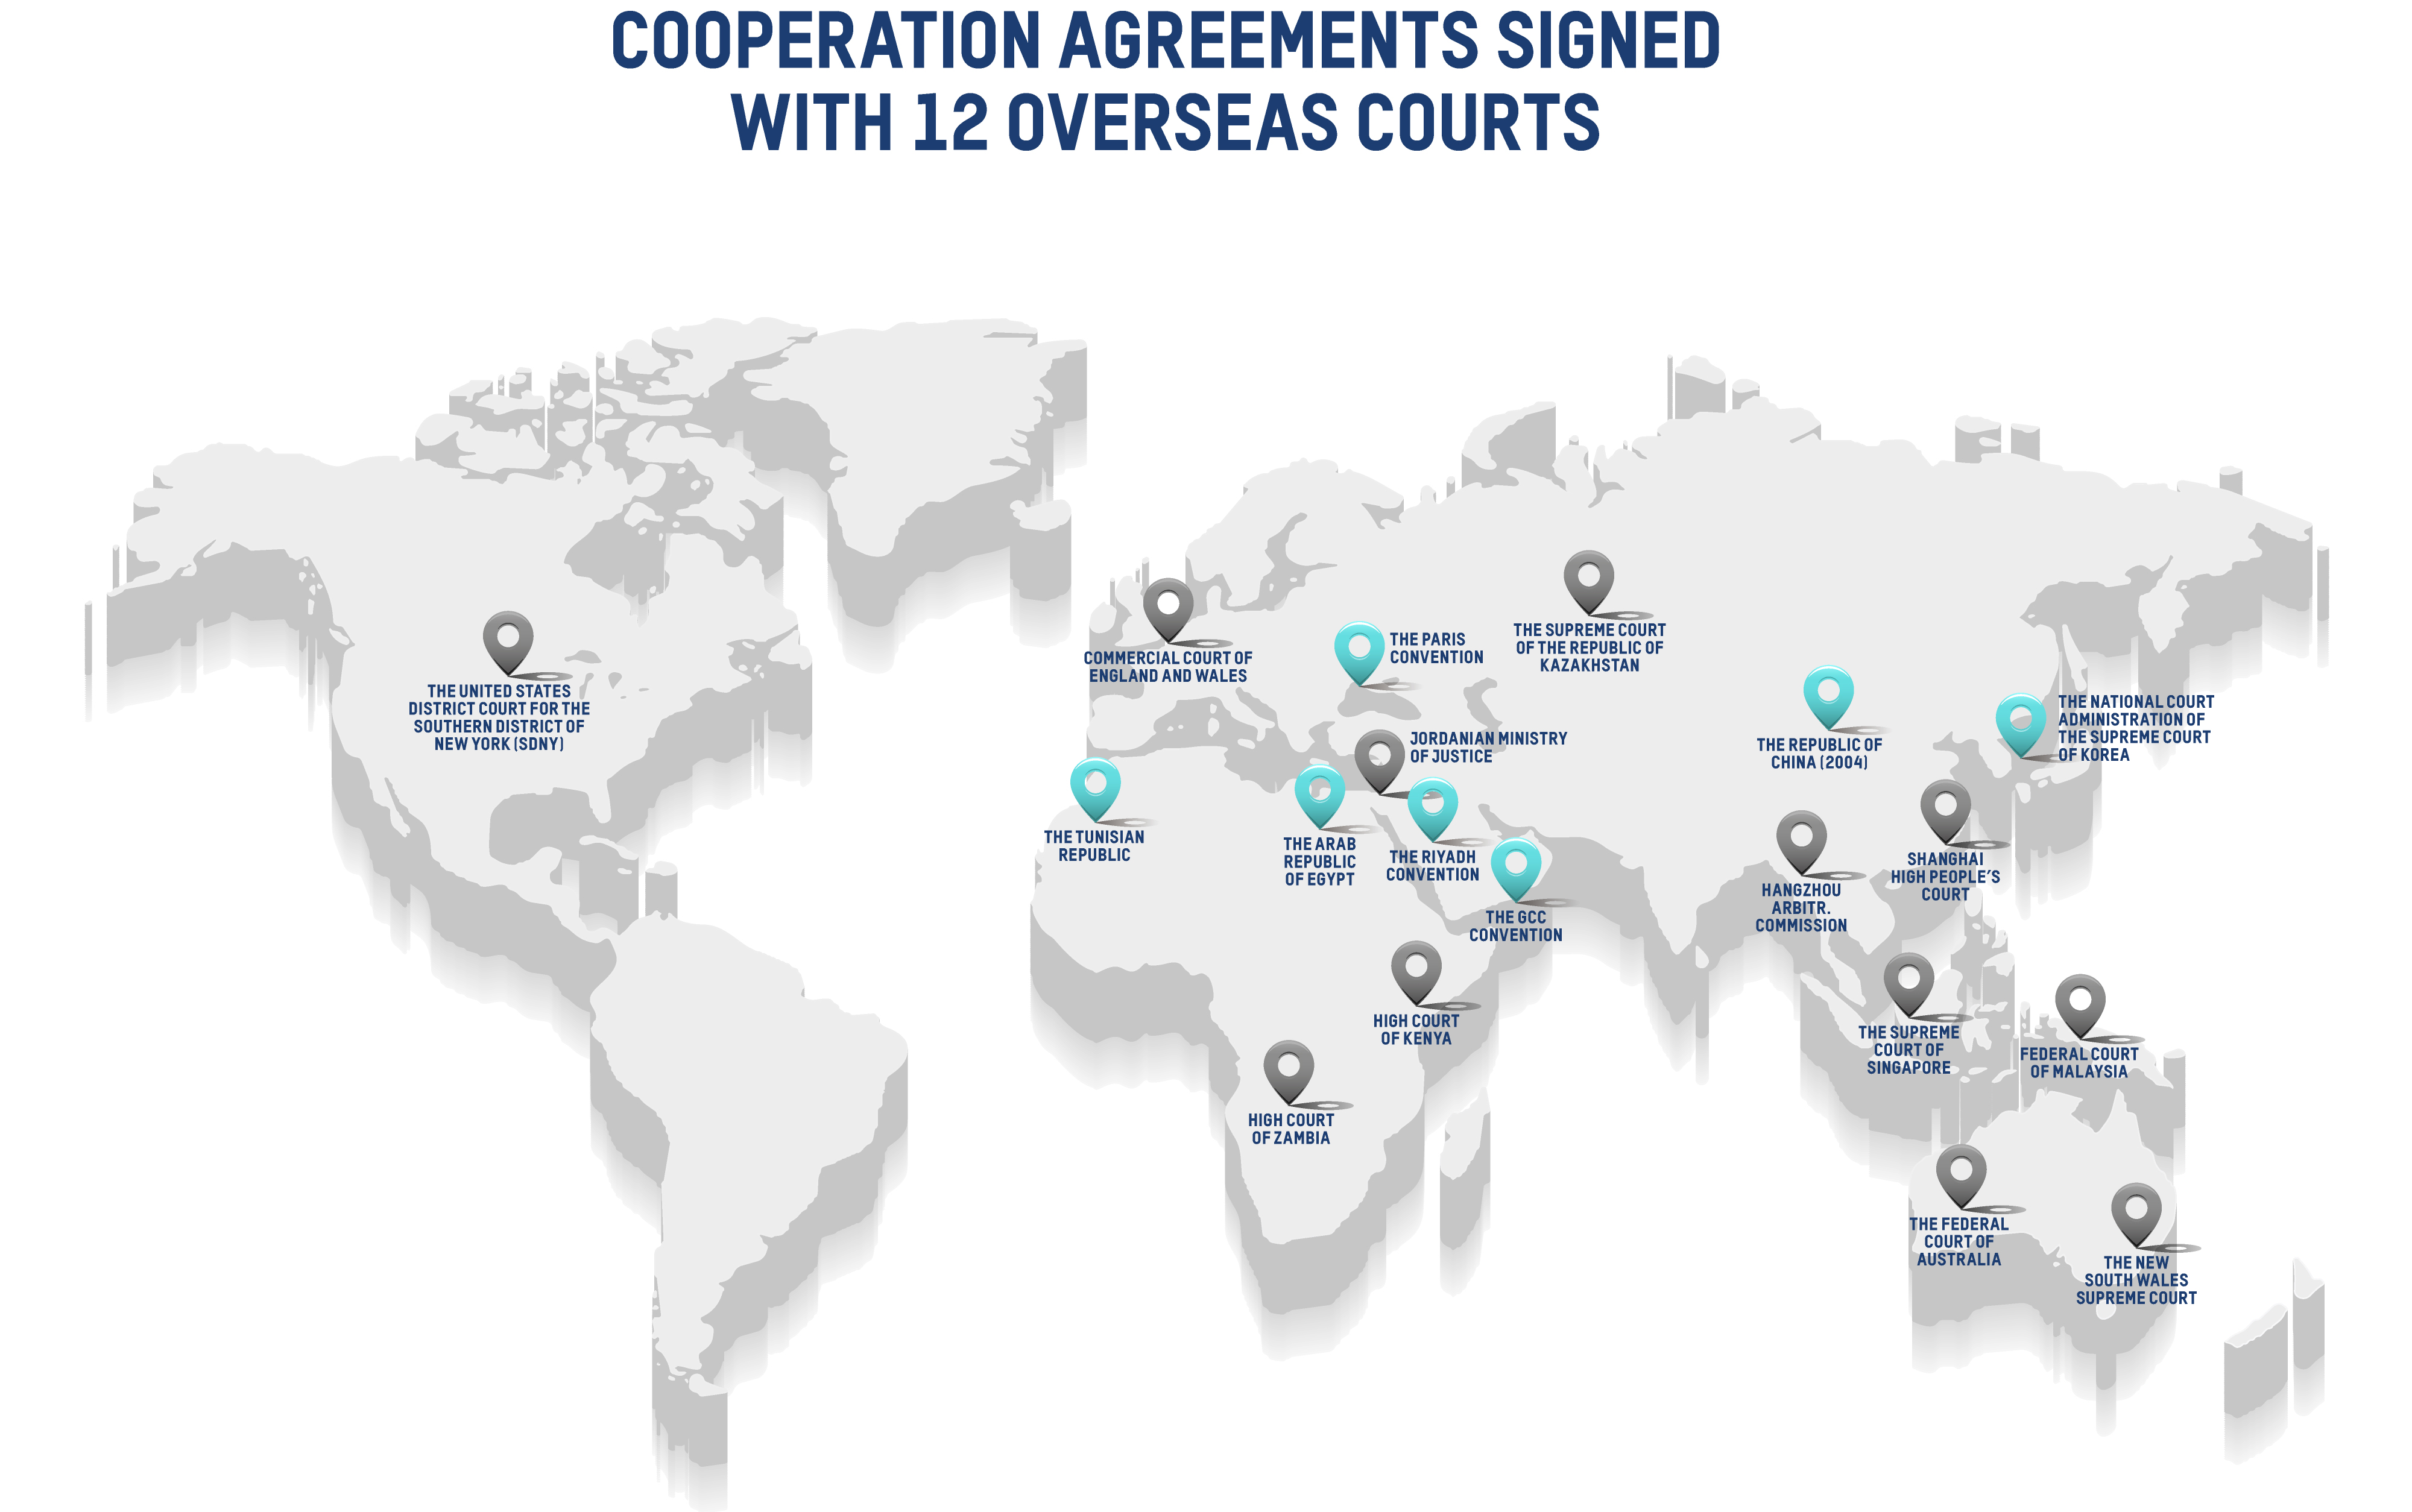 DIFC Courts' global connectivity